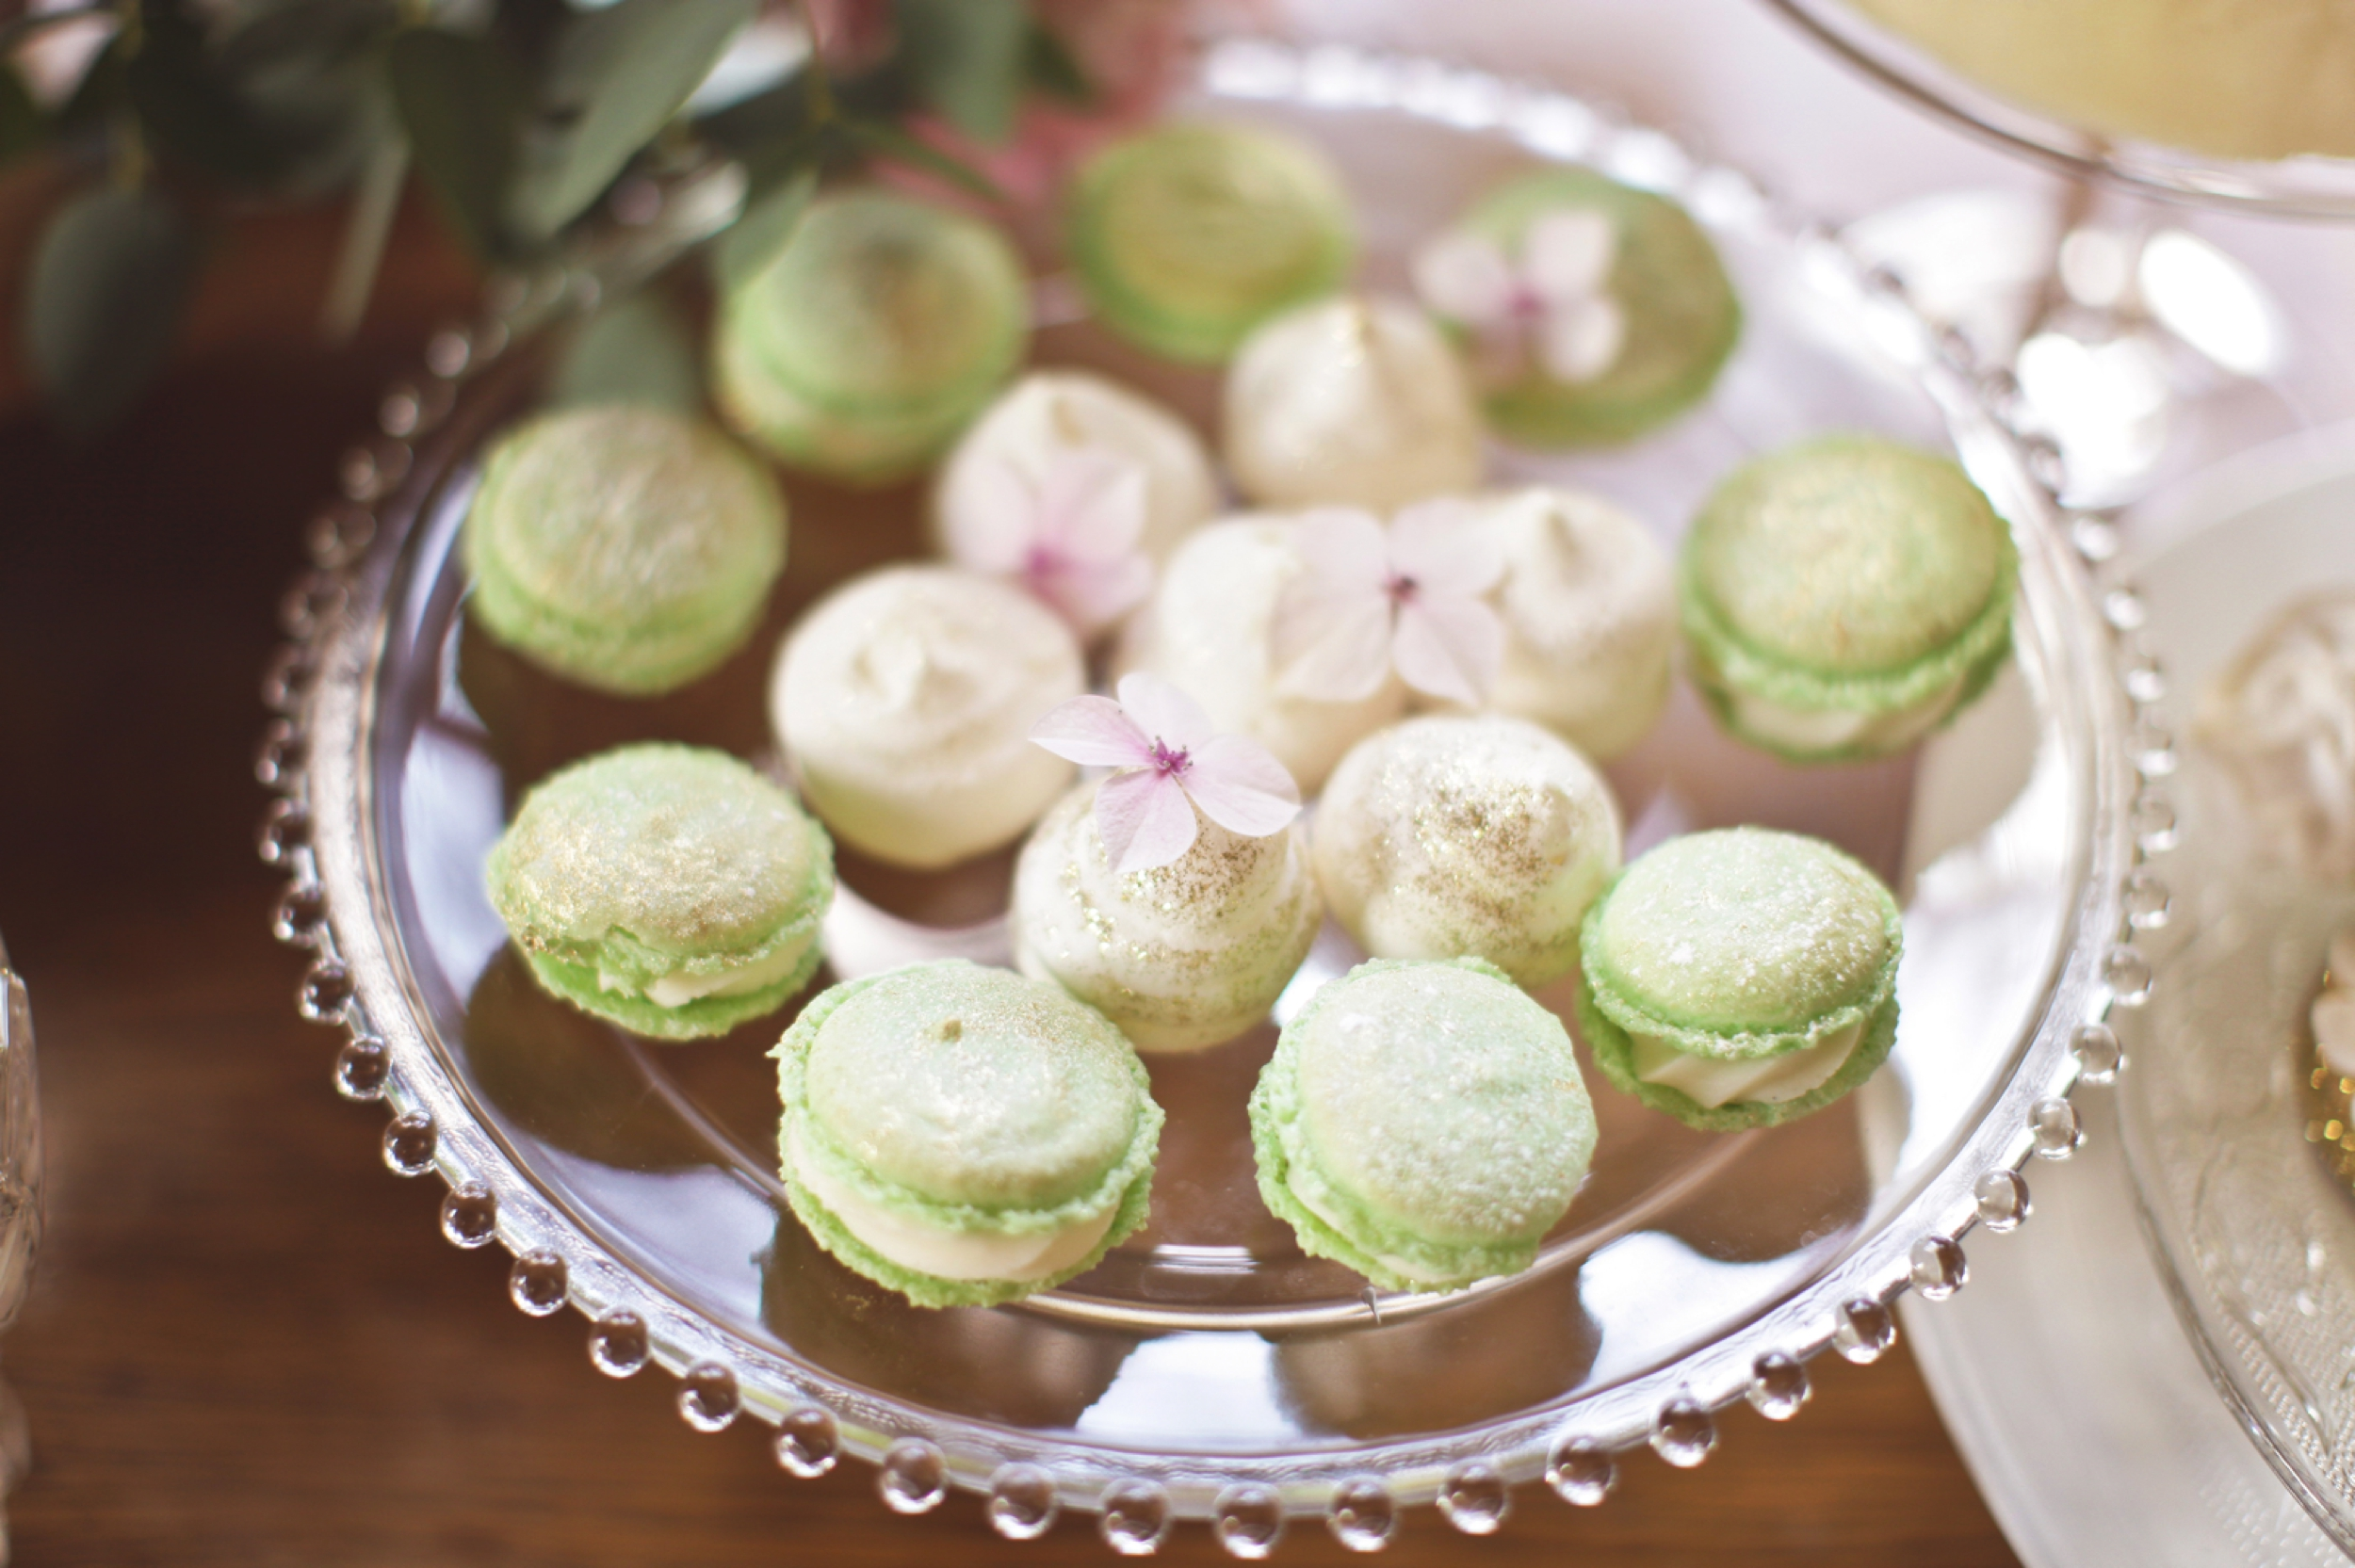 green and gold macaron, wedding macaron, dessert table.jpg